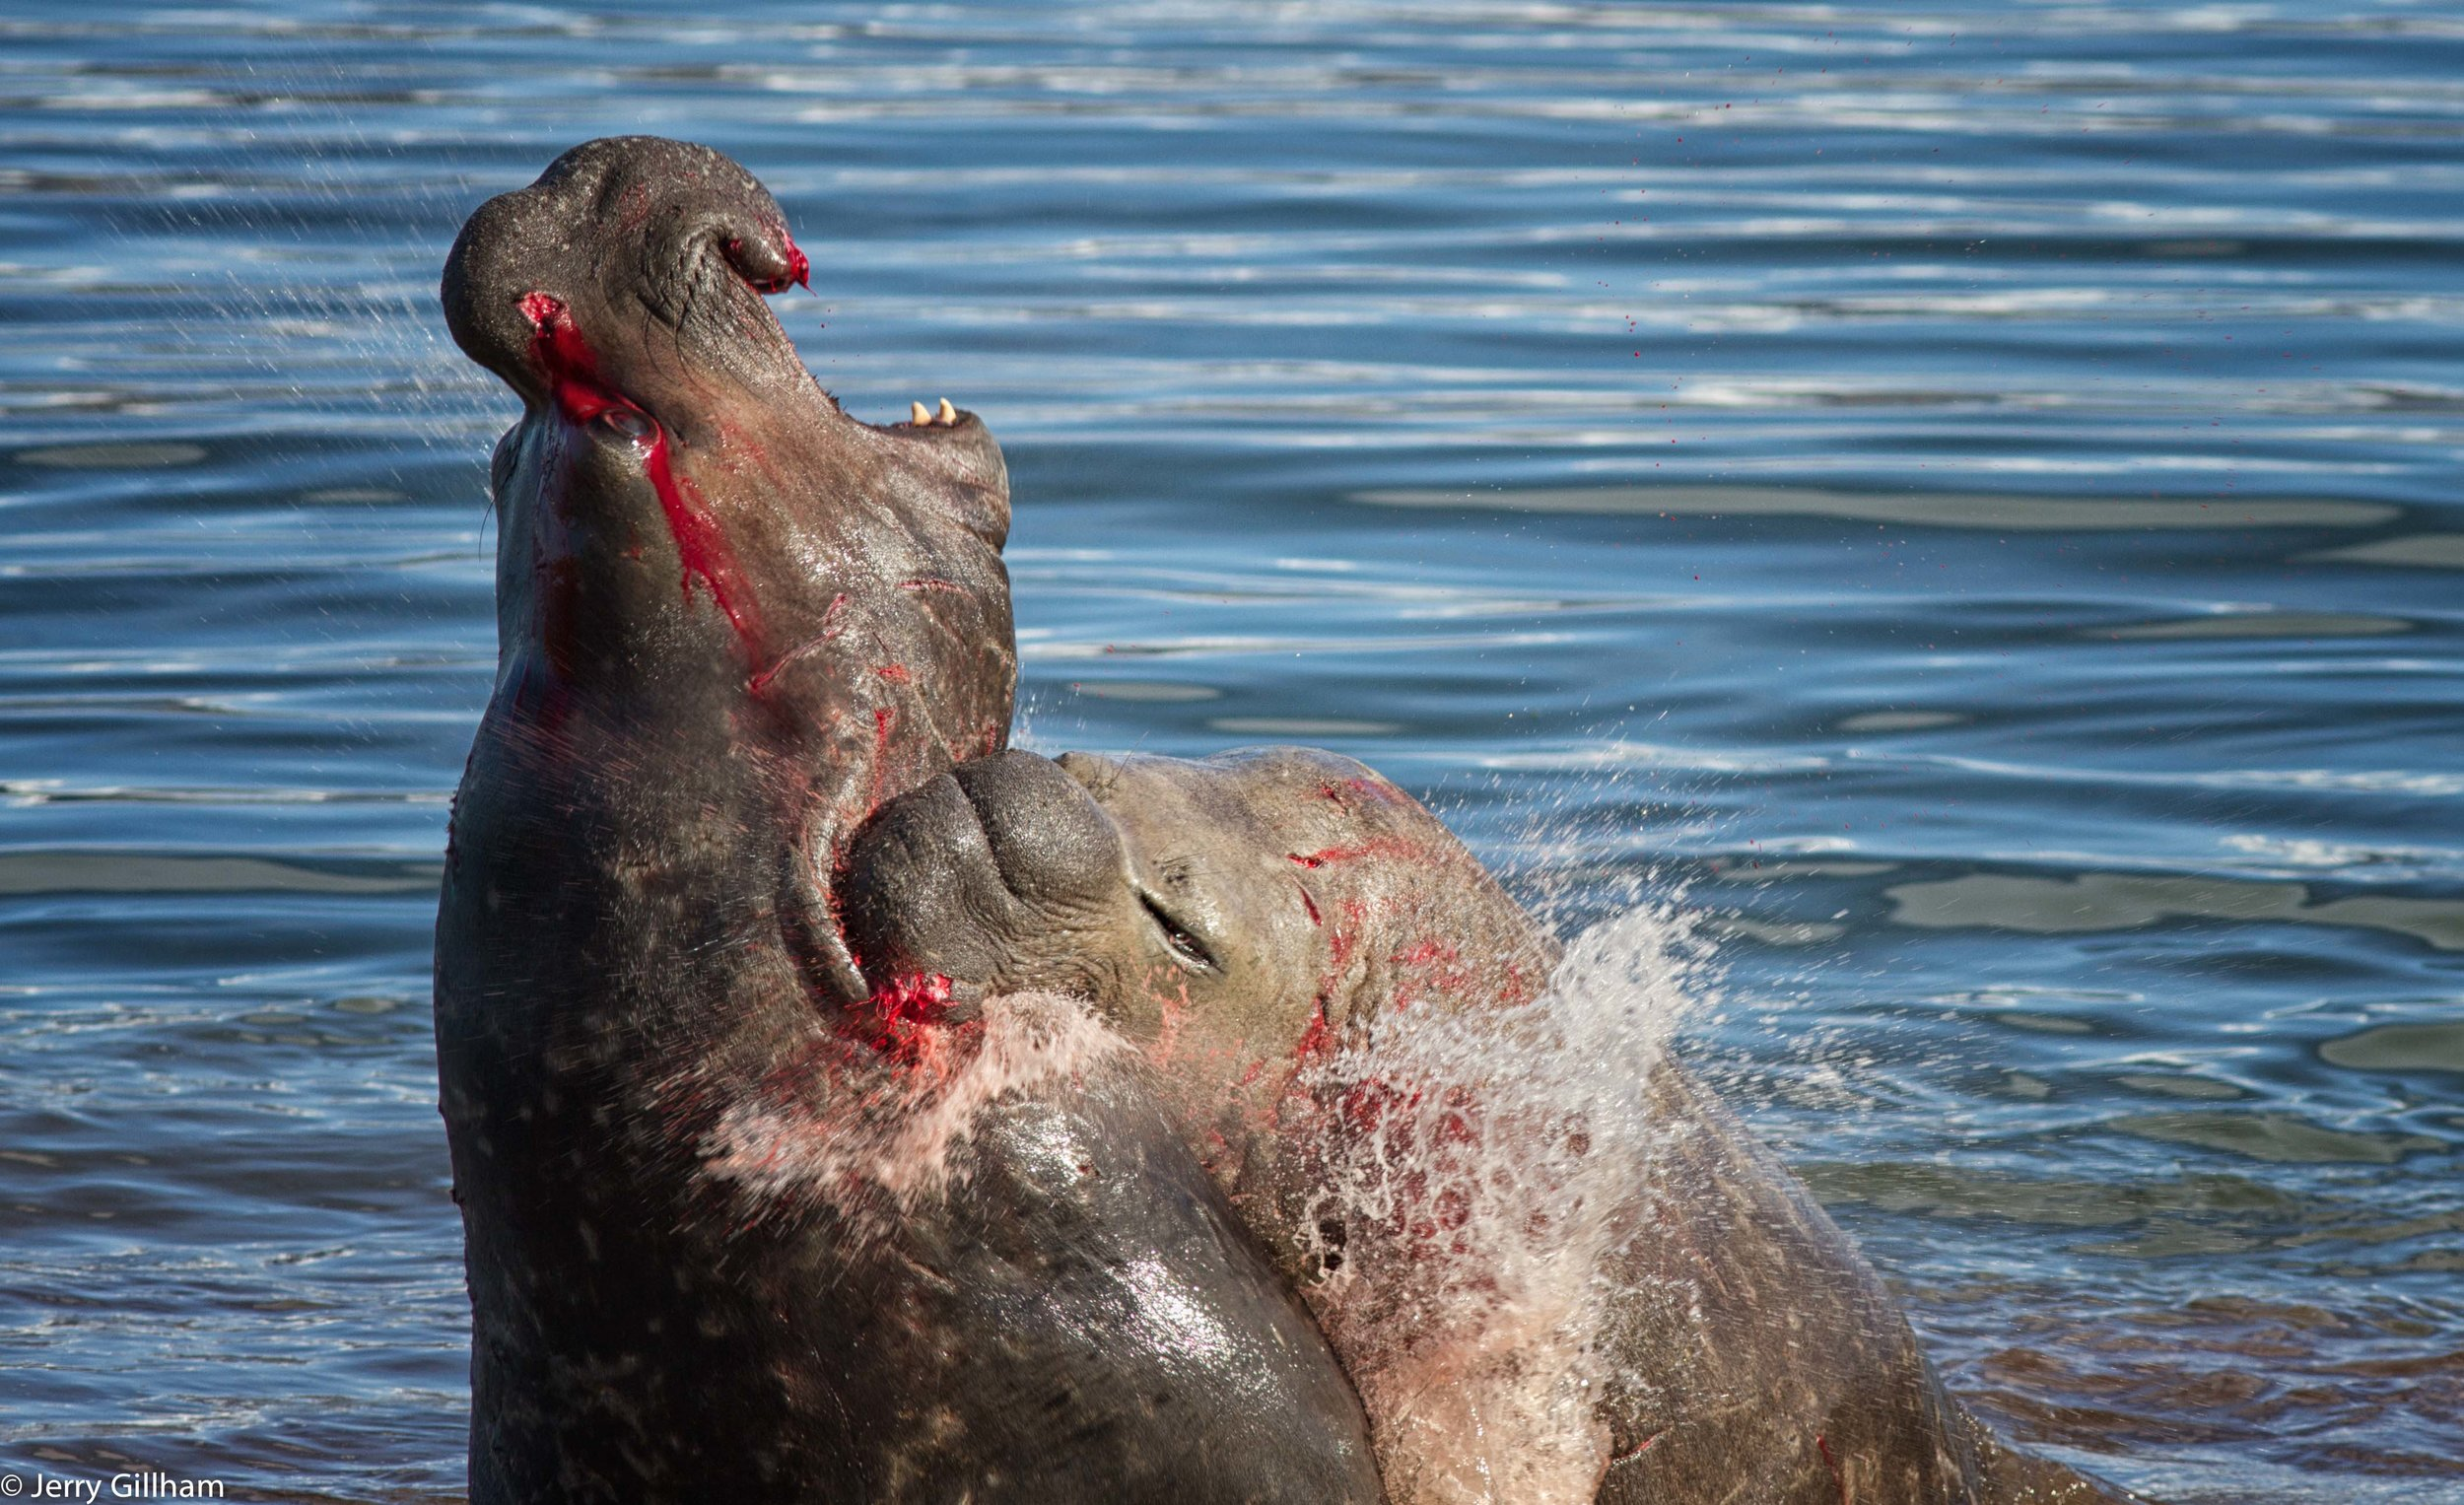 They reared up facing each other, if they'd been on the shore they'd have towered well over me, then slammed into each other, trying to grab a mouthful of skin and blubber around the neck with which to pull their opponent down. The noise of them clashing as well as the redness of the blood (extremely high in haemoglobin for all those deep dives) on them and colouring the water was extremely visceral.